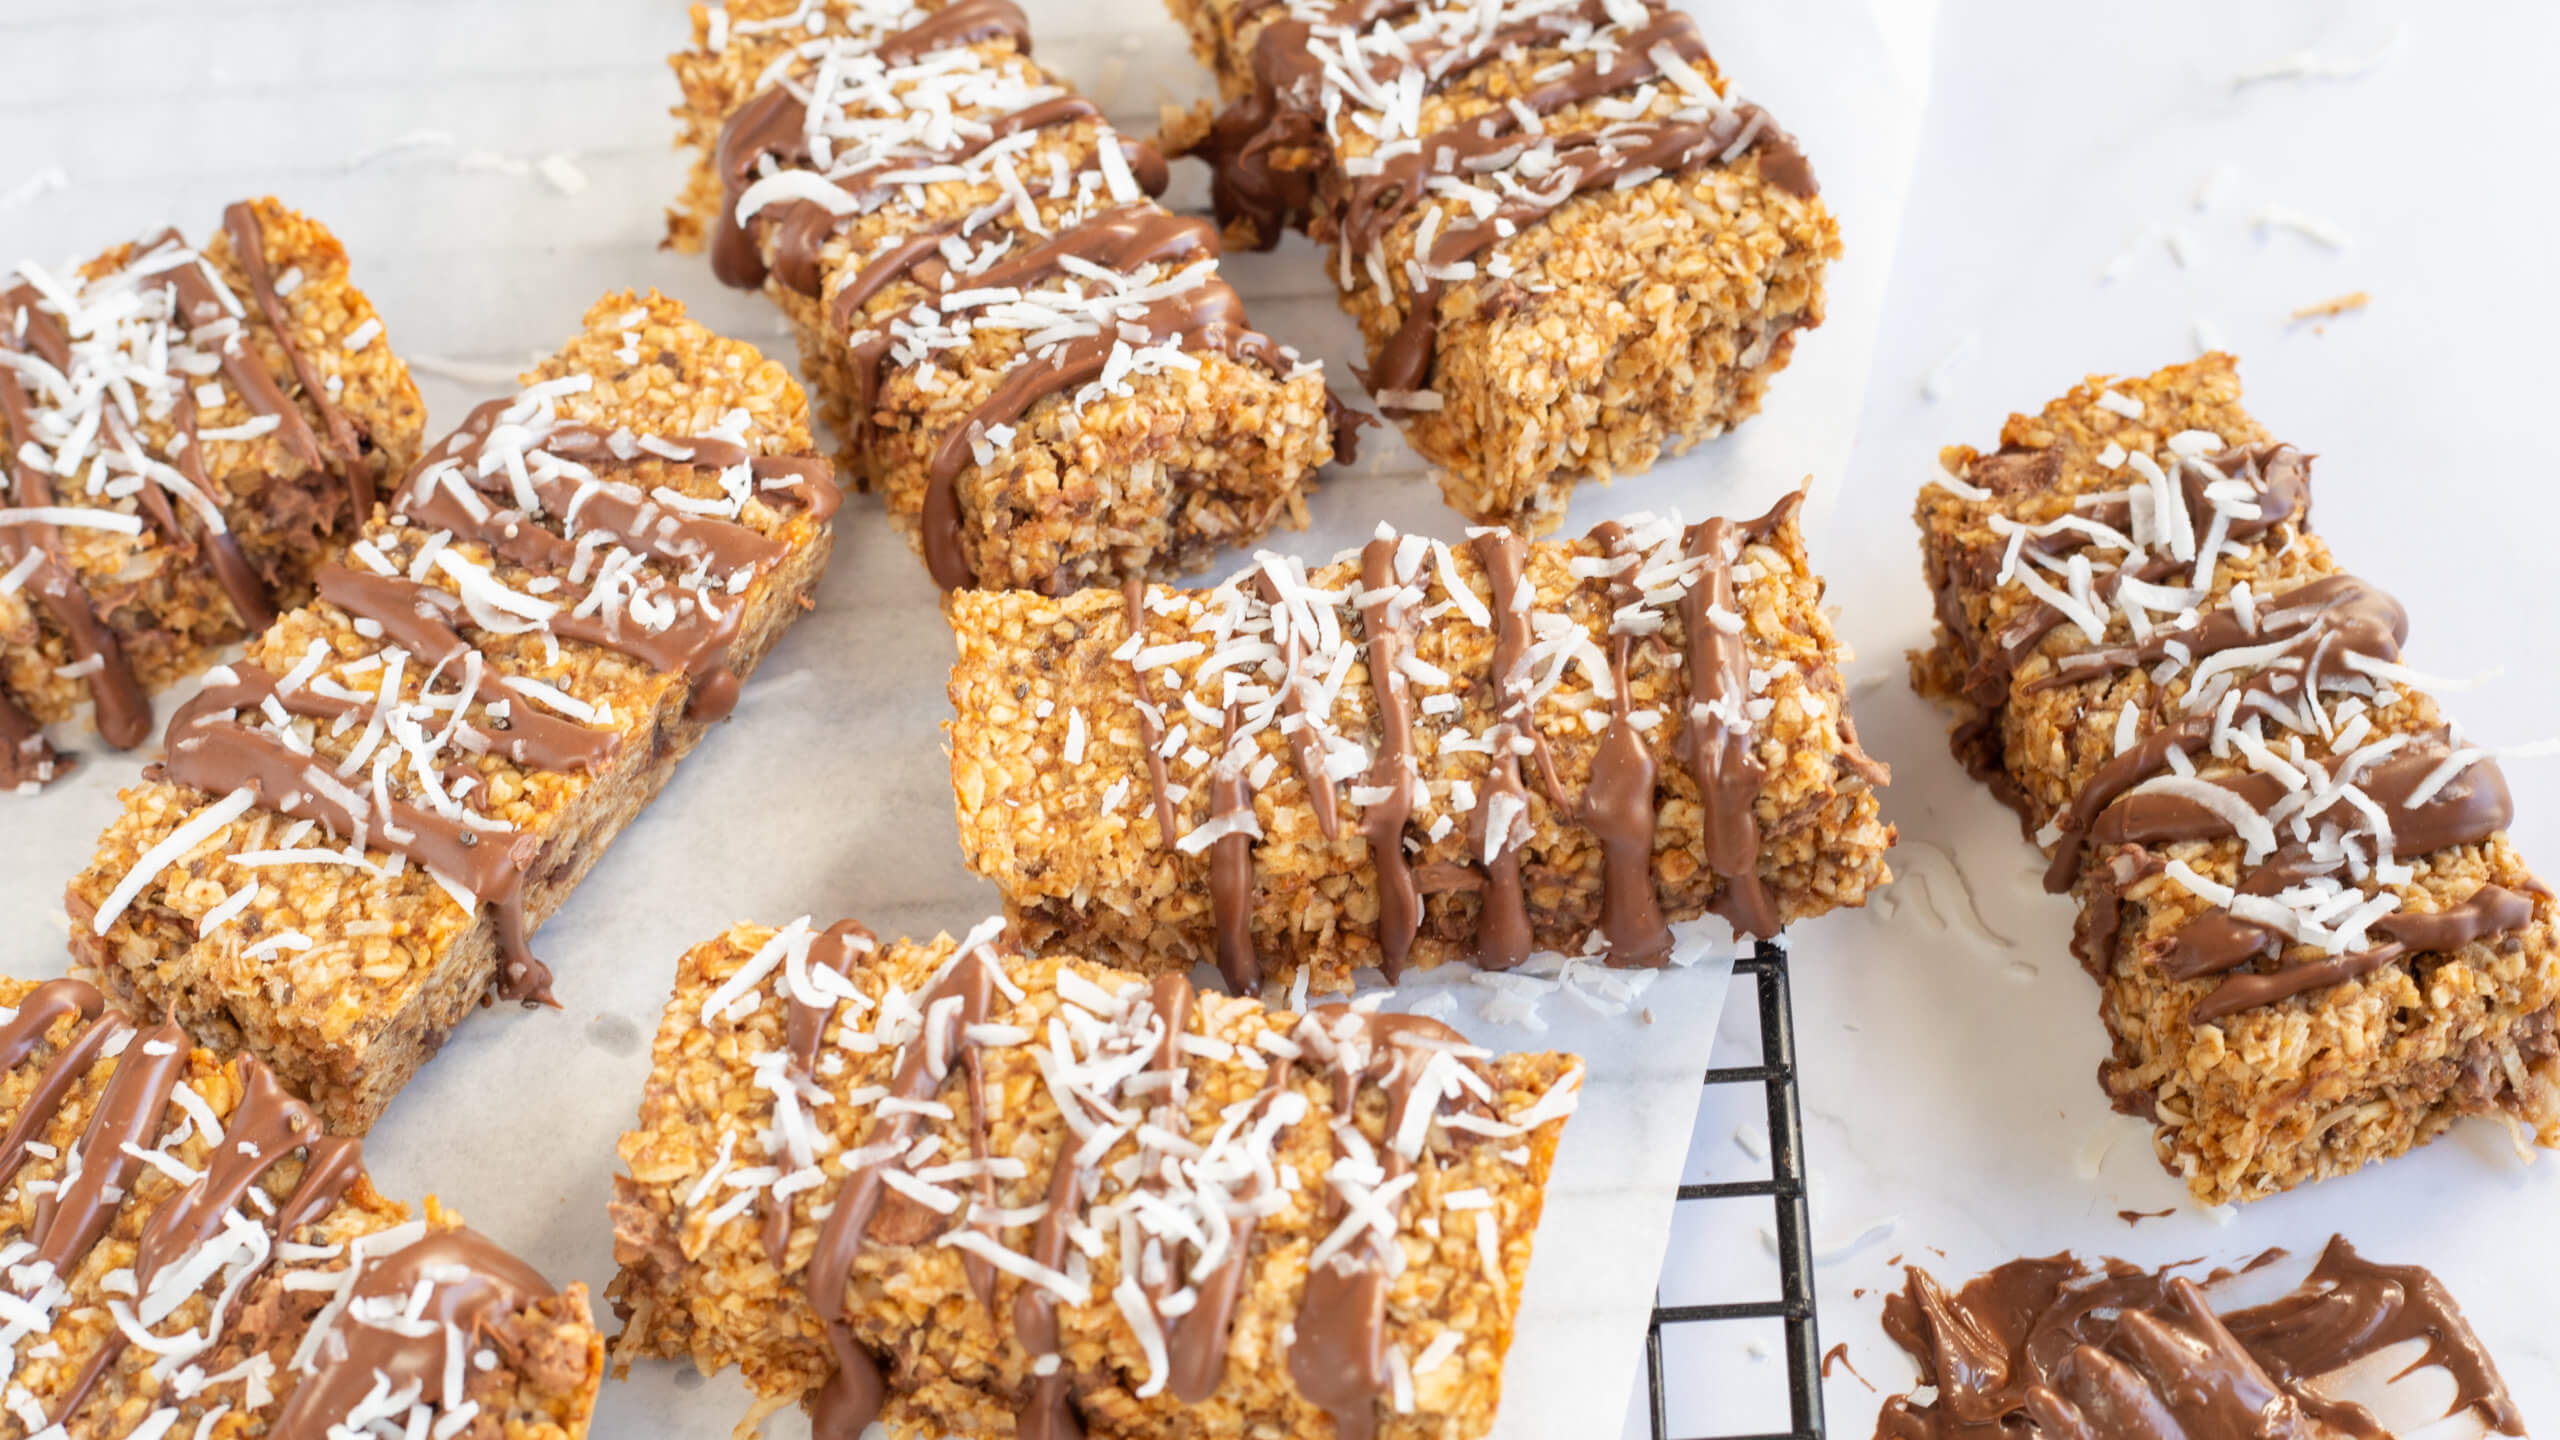 Oaty Bars Chocolate Drizzle Recipe